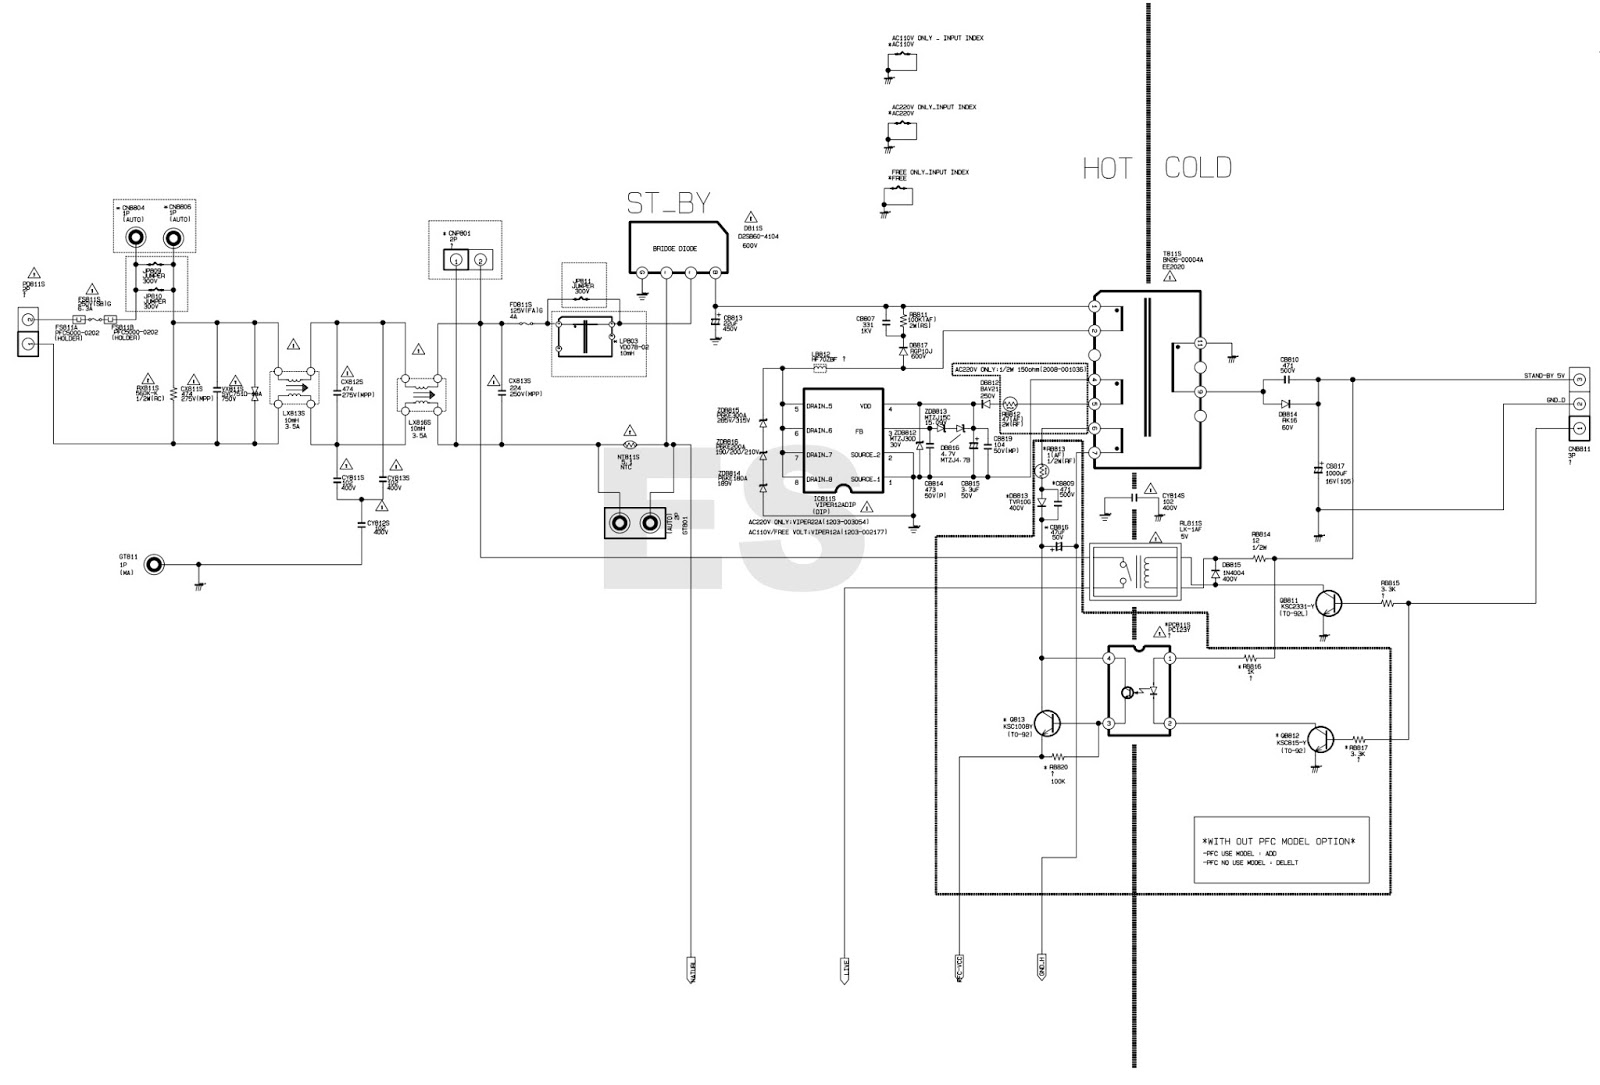 1 electronic equipment repair centre samsung bn44 00622b power samsung led tv wiring diagram at bakdesigns.co